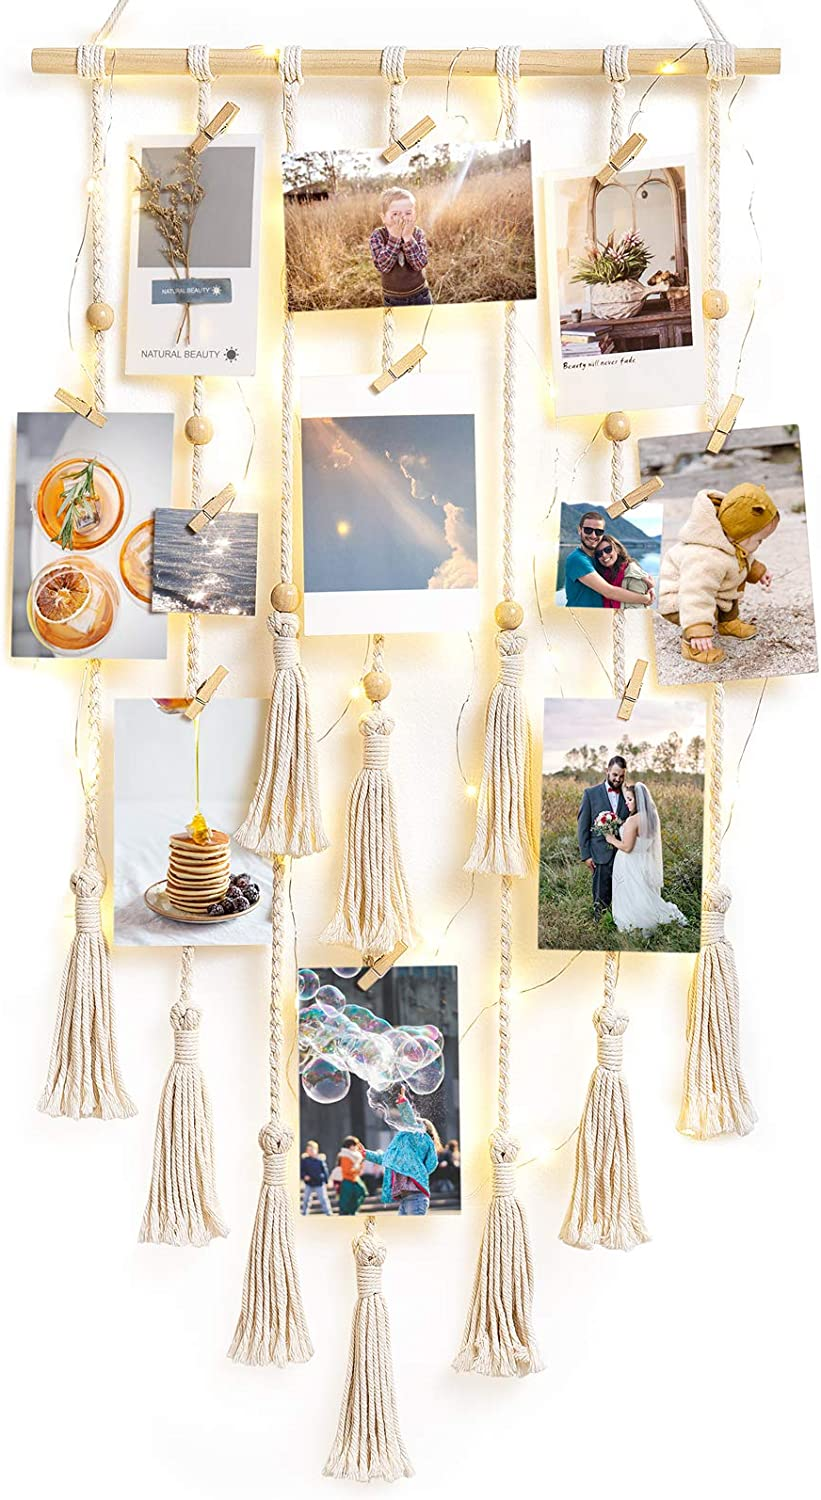 Mkono Hanging Photo Display with String Lights Macrame Boho Wall Hanging Decor Pictures Cards Holder for Bedroom Living Room, Dorm Gallery, with 30 Wood Clips